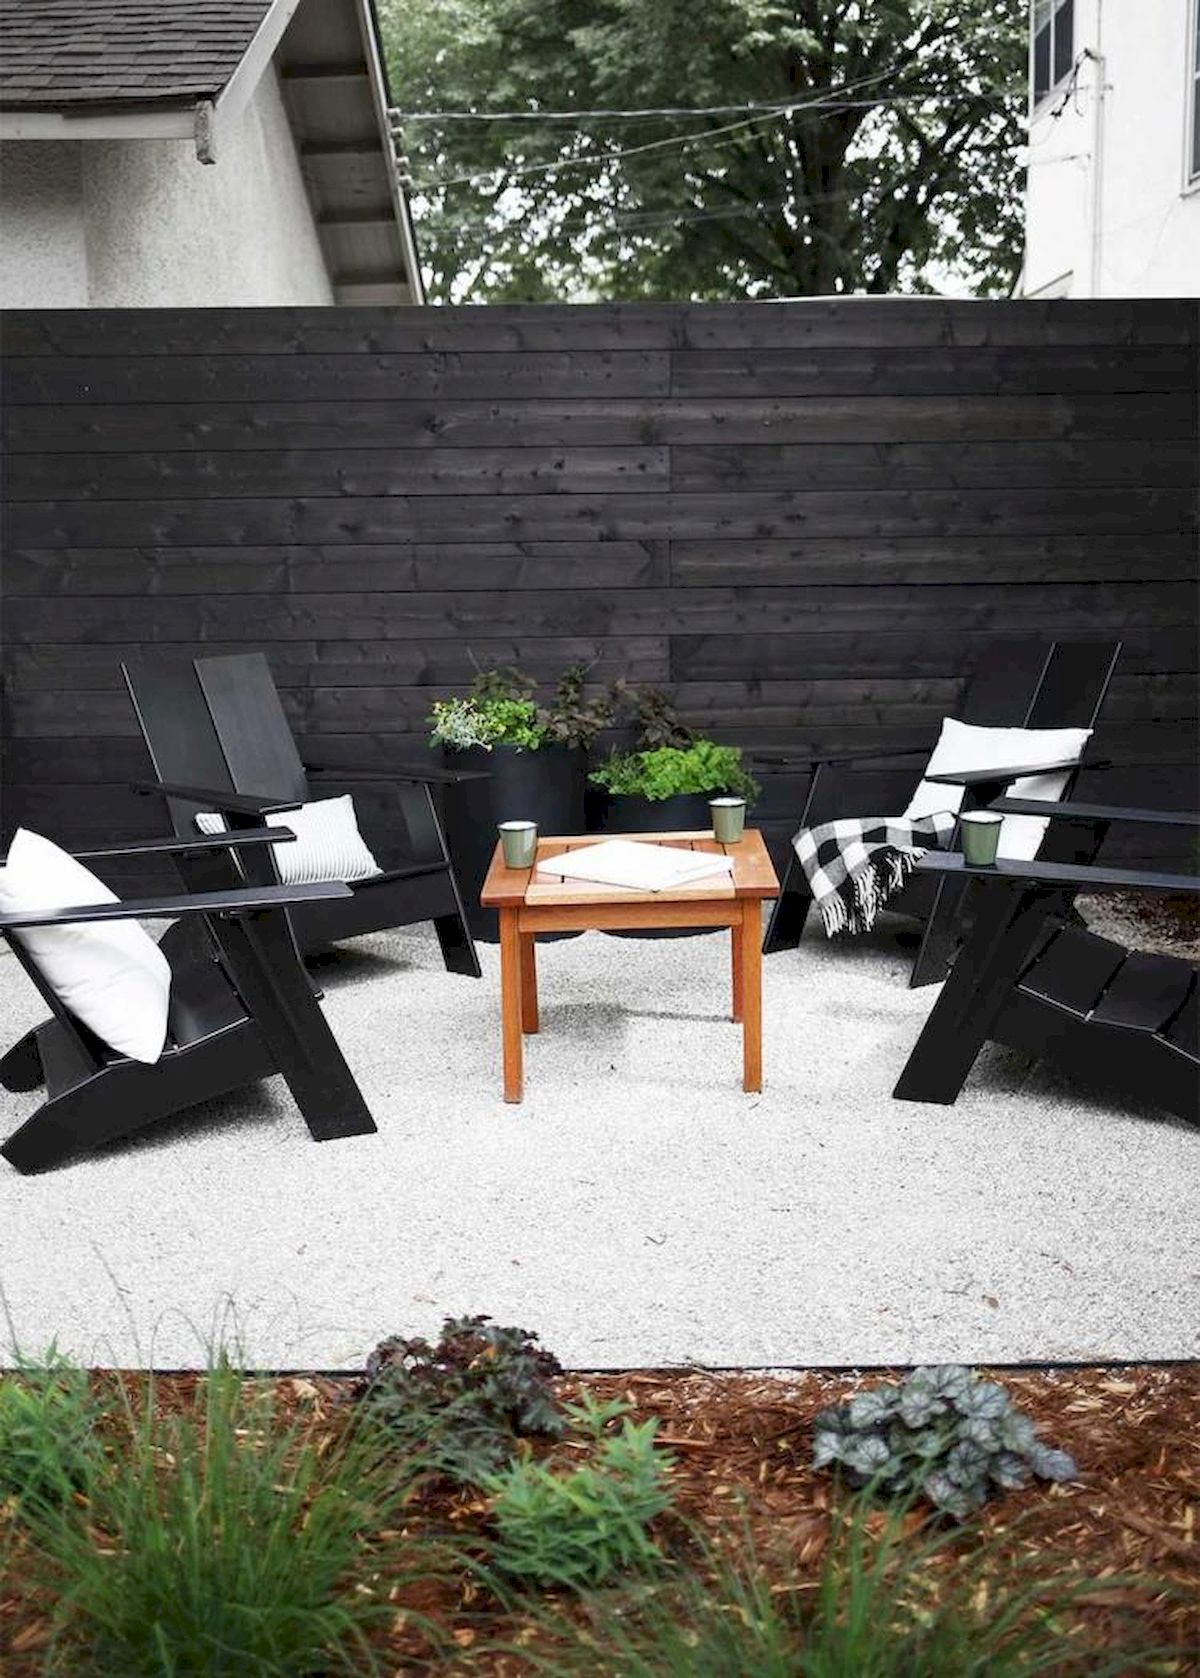 60 Awesome Backyard Privacy Design and Decor Ideas (57)